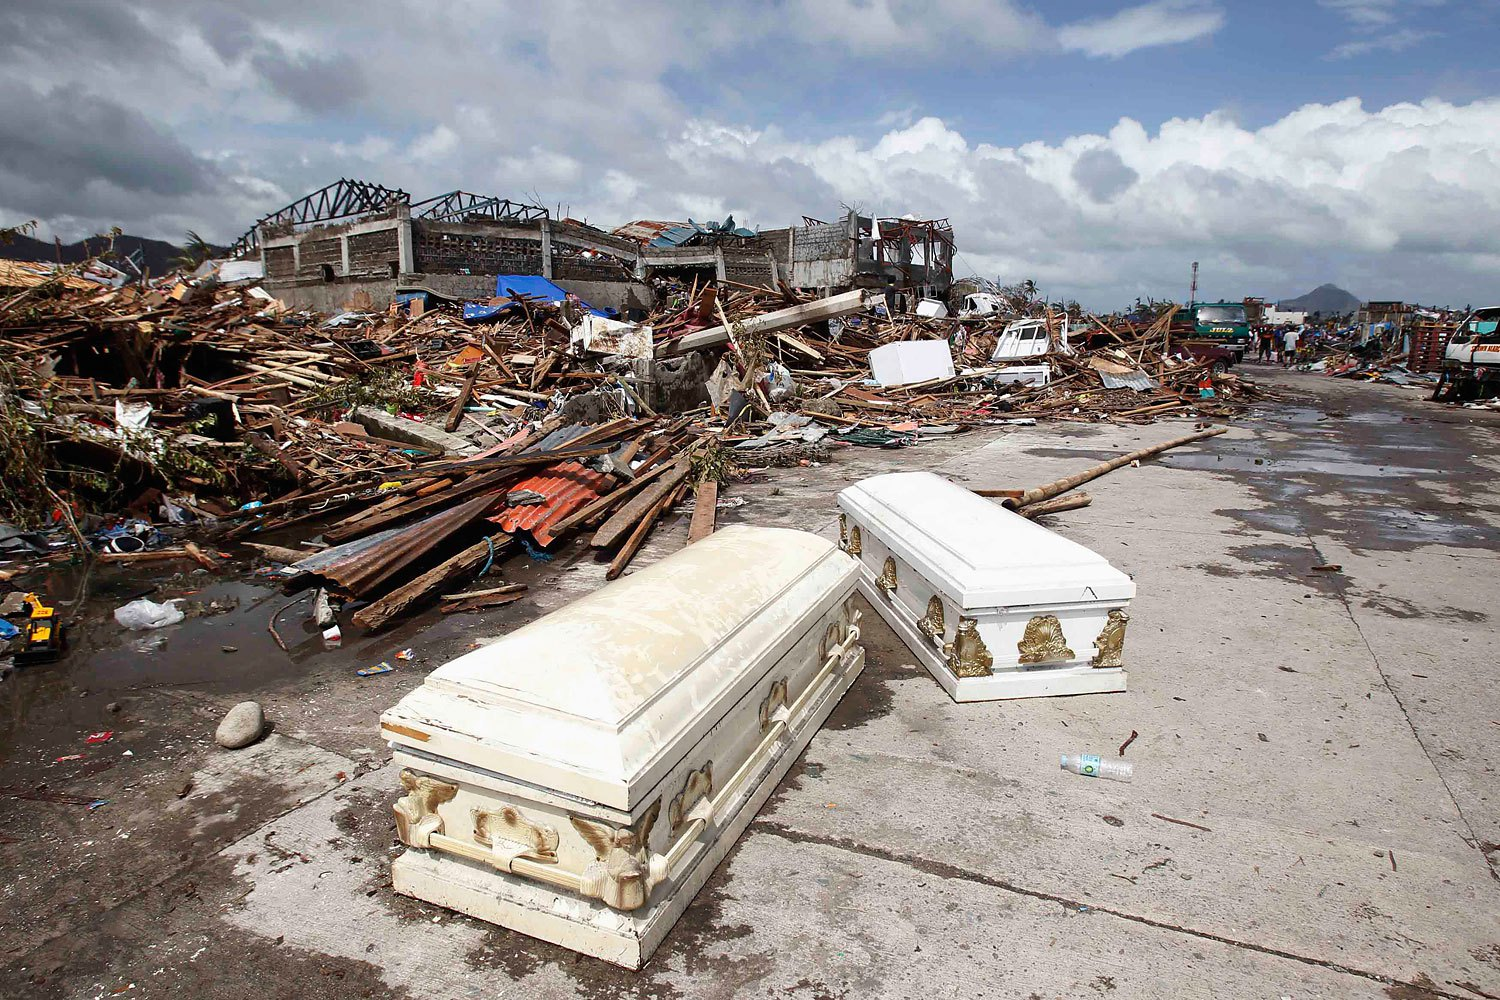 Empty coffins lie on a street near ruined houses on Nov. 10, 2013, after Supertyphoon Haiyan battered the city of Tacloban, in central Philippines